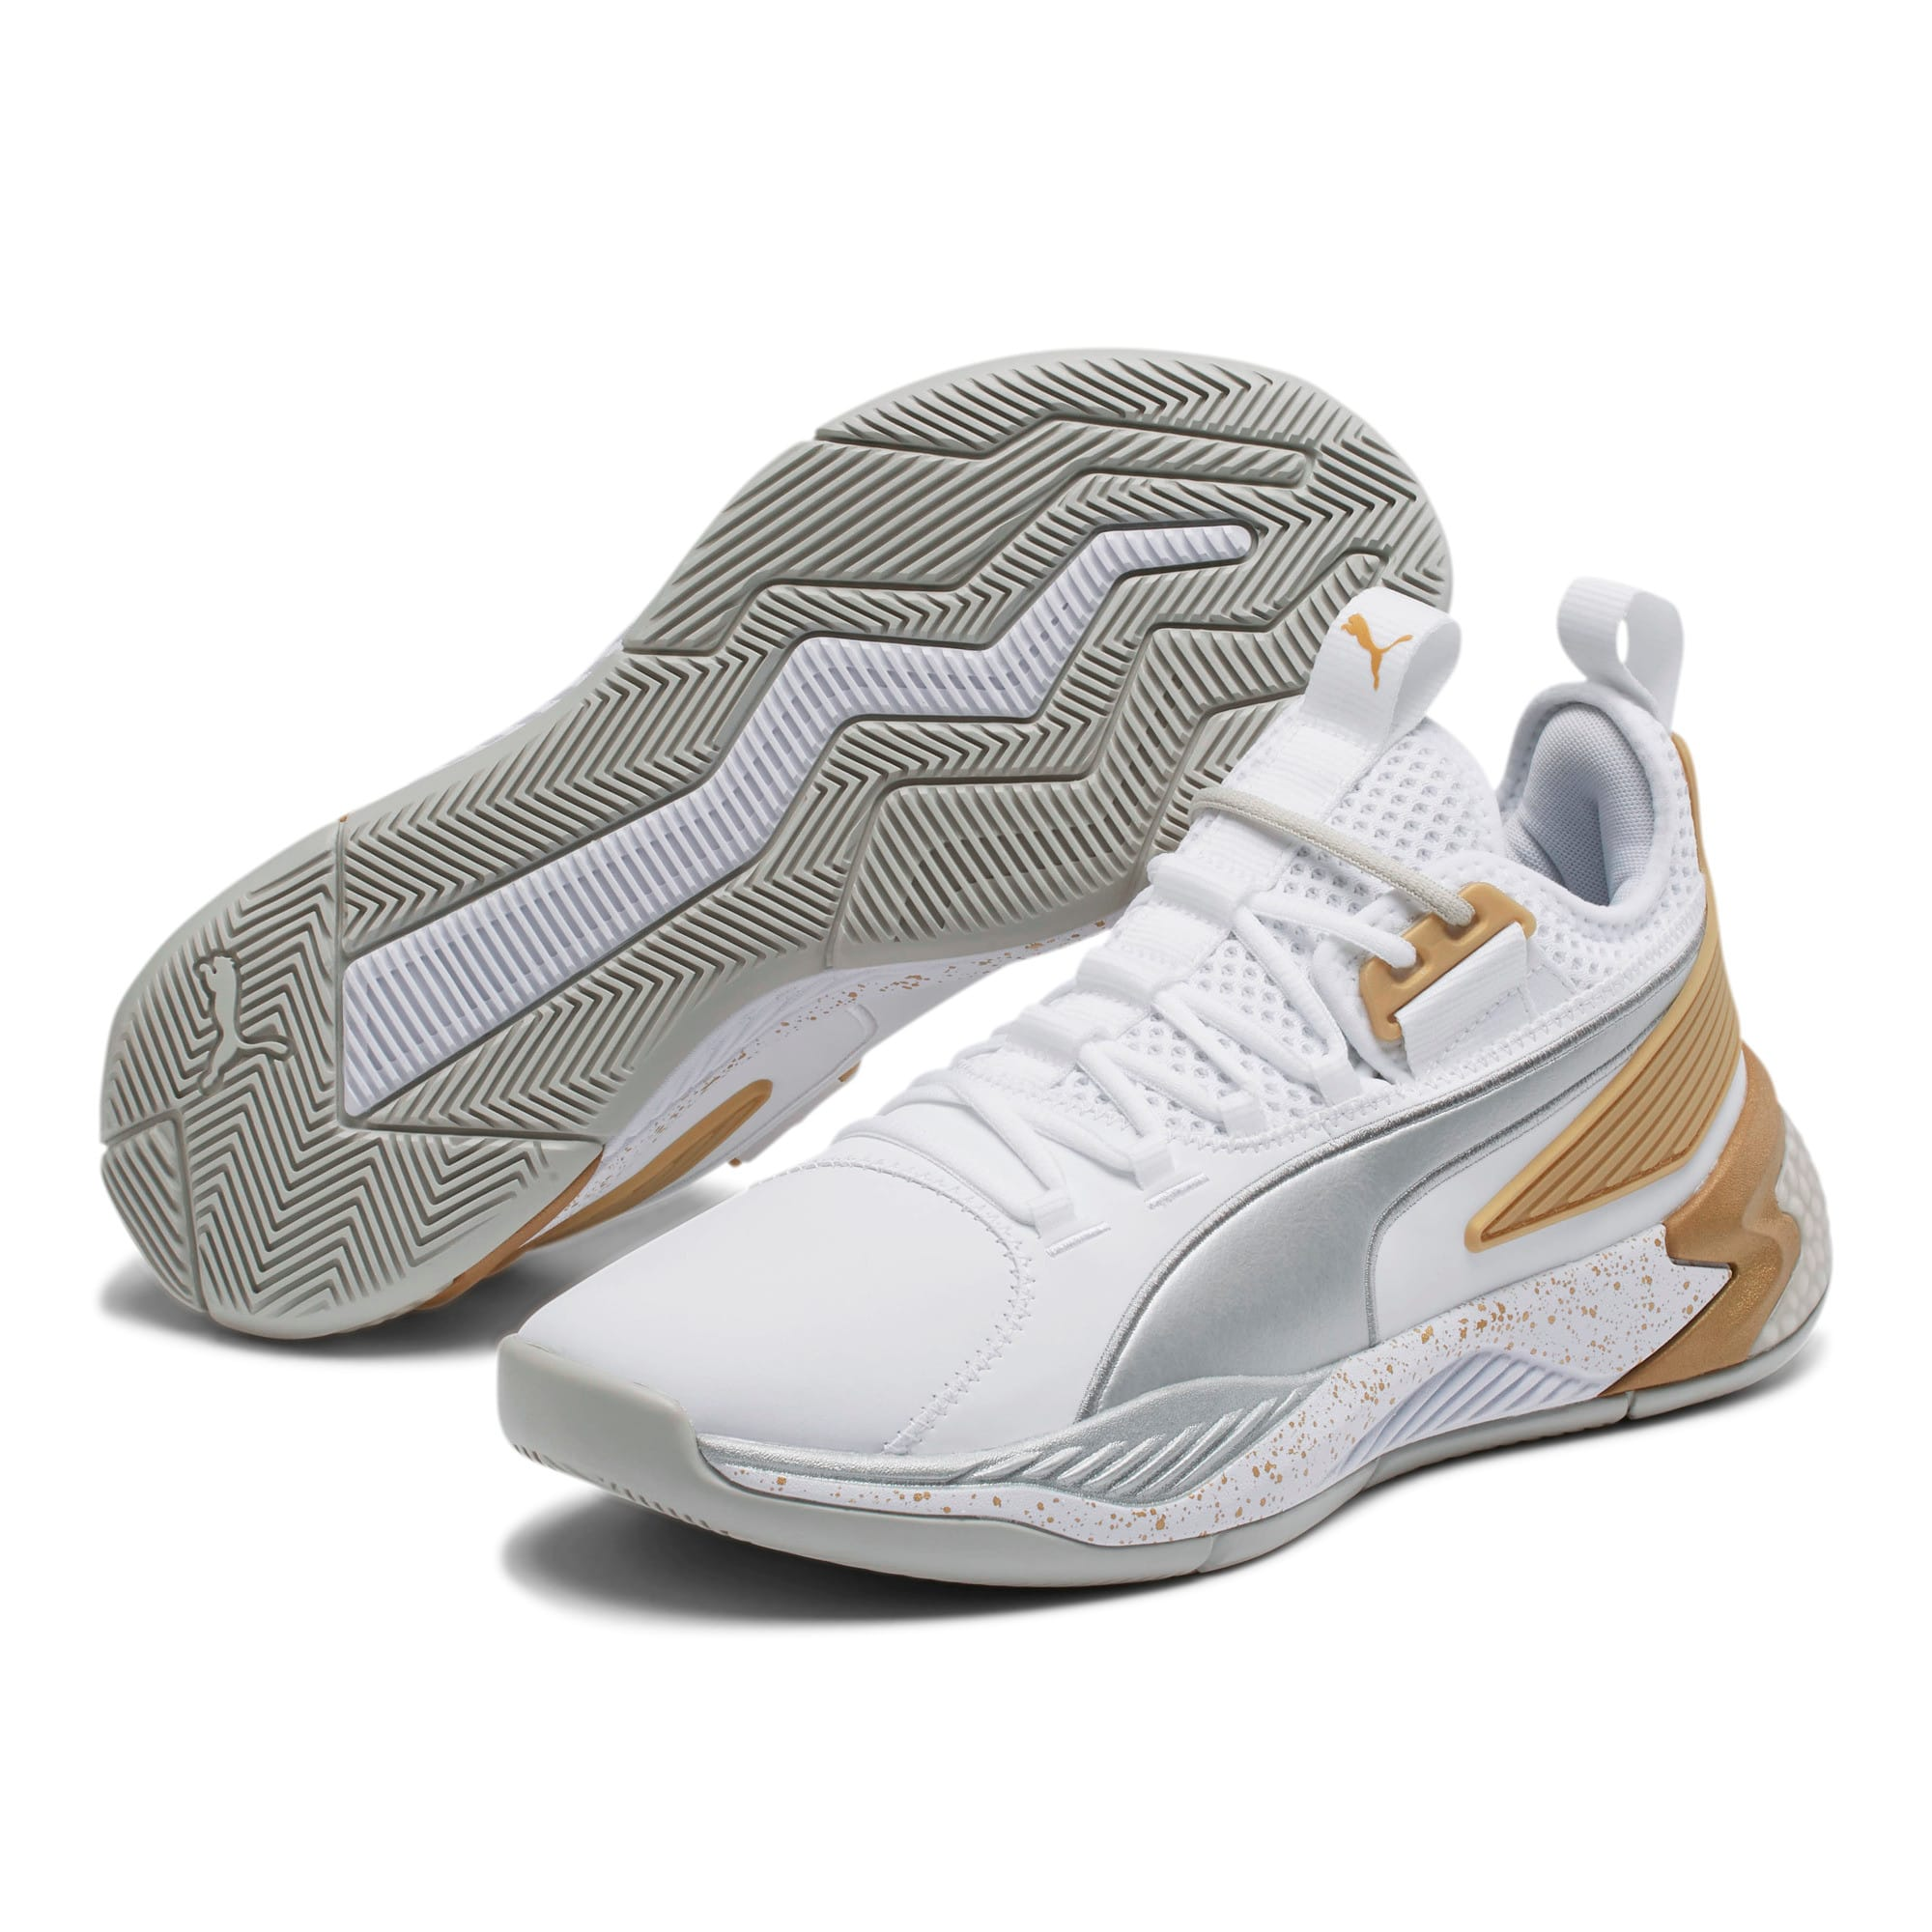 Thumbnail 2 of Uproar Core Men's Basketball Shoes, Puma White-Metallic Silver, medium-IND